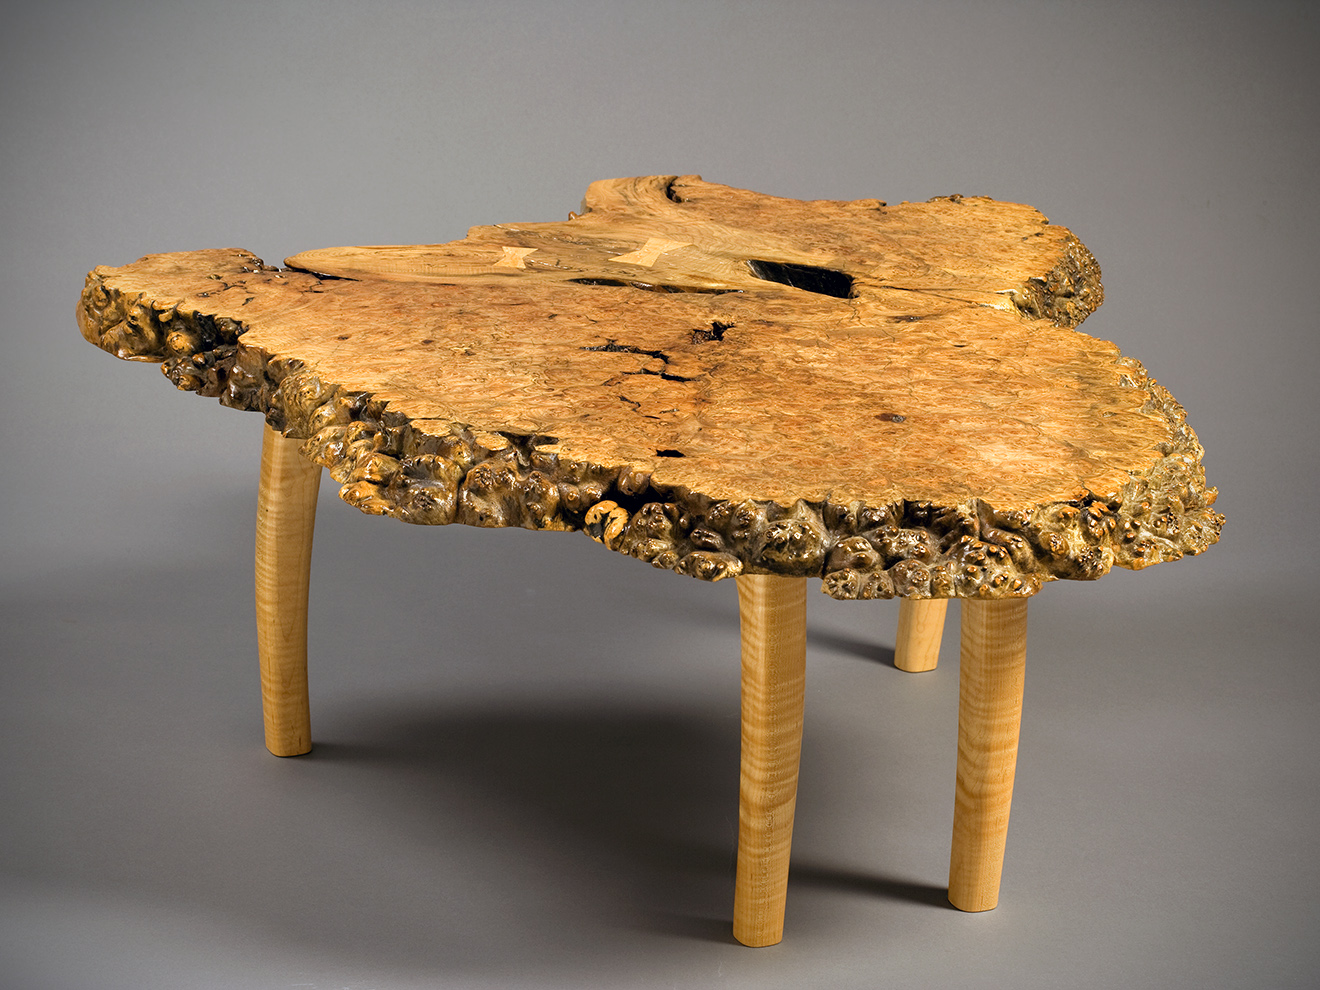 """Big Leaf Maple Burl Coffee Table Big Leaf Maple Burl top with Birds-Eye Maple Butterfly inlays. Tiger Maple sculpted legs and apron. Mortise and tenon construction. 16.5""""h × 38""""w × 42""""d"""